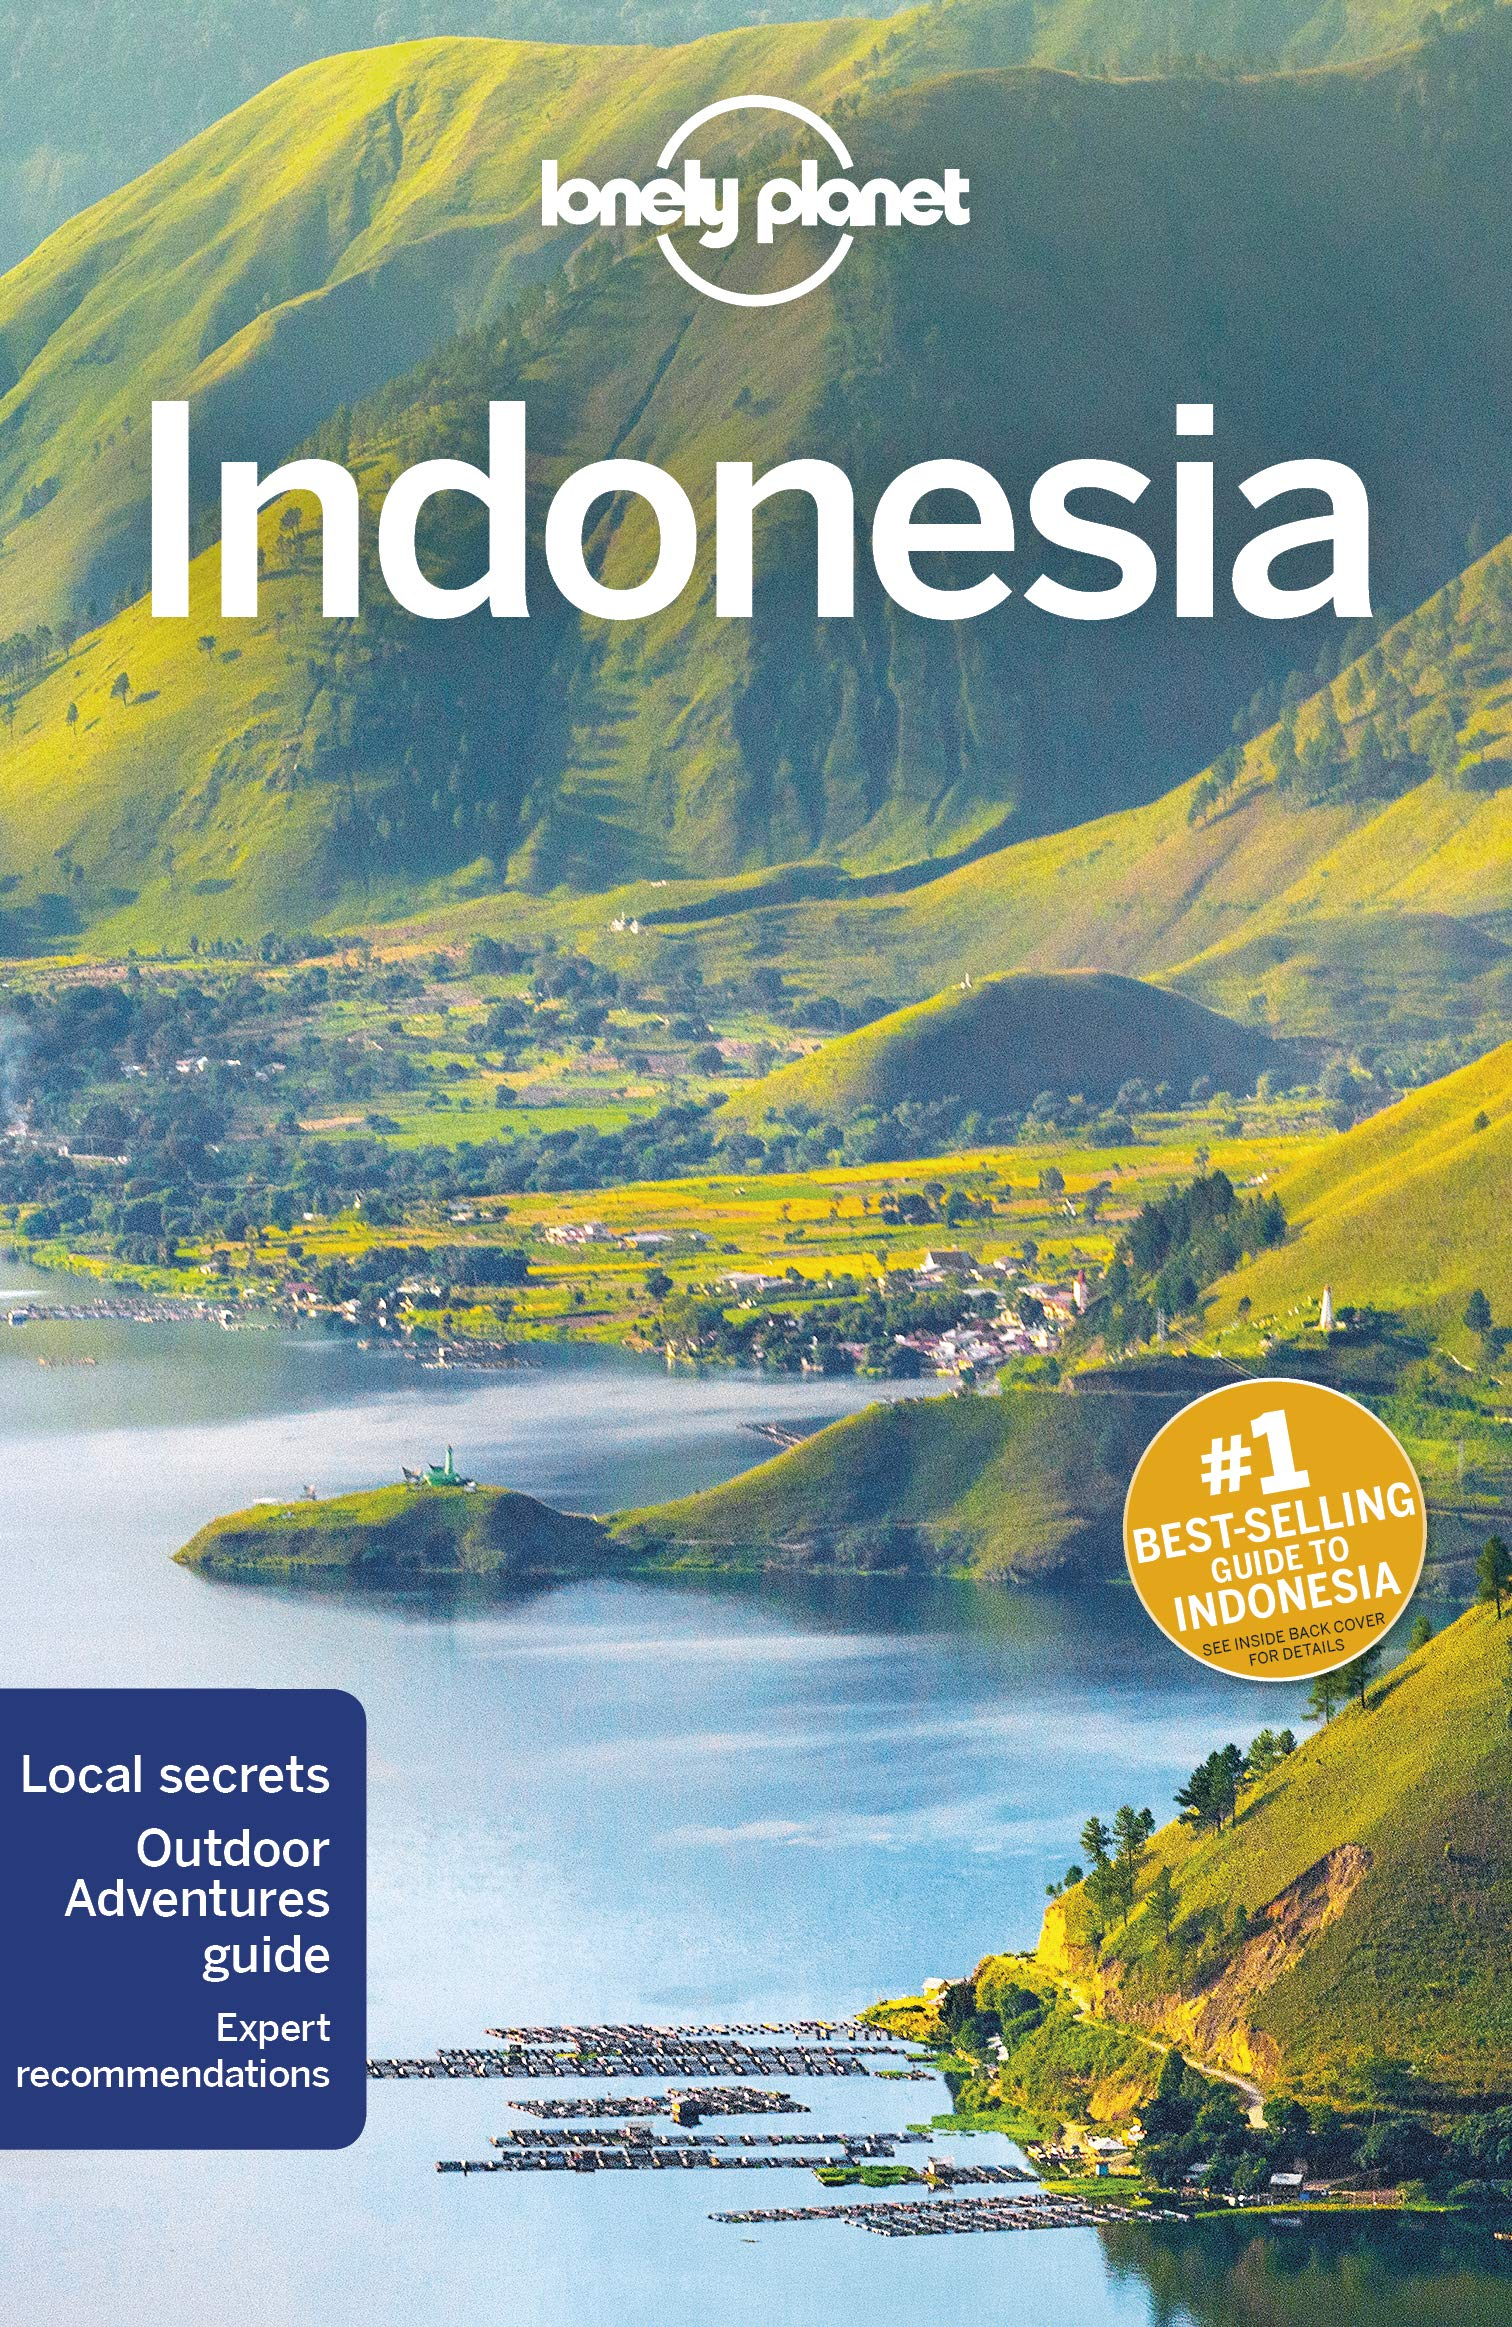 Reisgids Indonesia - Indonesië | Lonely Planet <br/>€ 28.95 <br/> <a href='https://www.dezwerver.nl/reisgidsen/?tt=1554_252853_241358_&r=https%3A%2F%2Fwww.dezwerver.nl%2Fr%2Fazie%2Findonesie%2Fc%2Fboeken%2Freisgidsen%2F9781786574770%2Freisgids-indonesia-indonesie-lonely-planet%2F' target='_blank'>Meer Info</a>